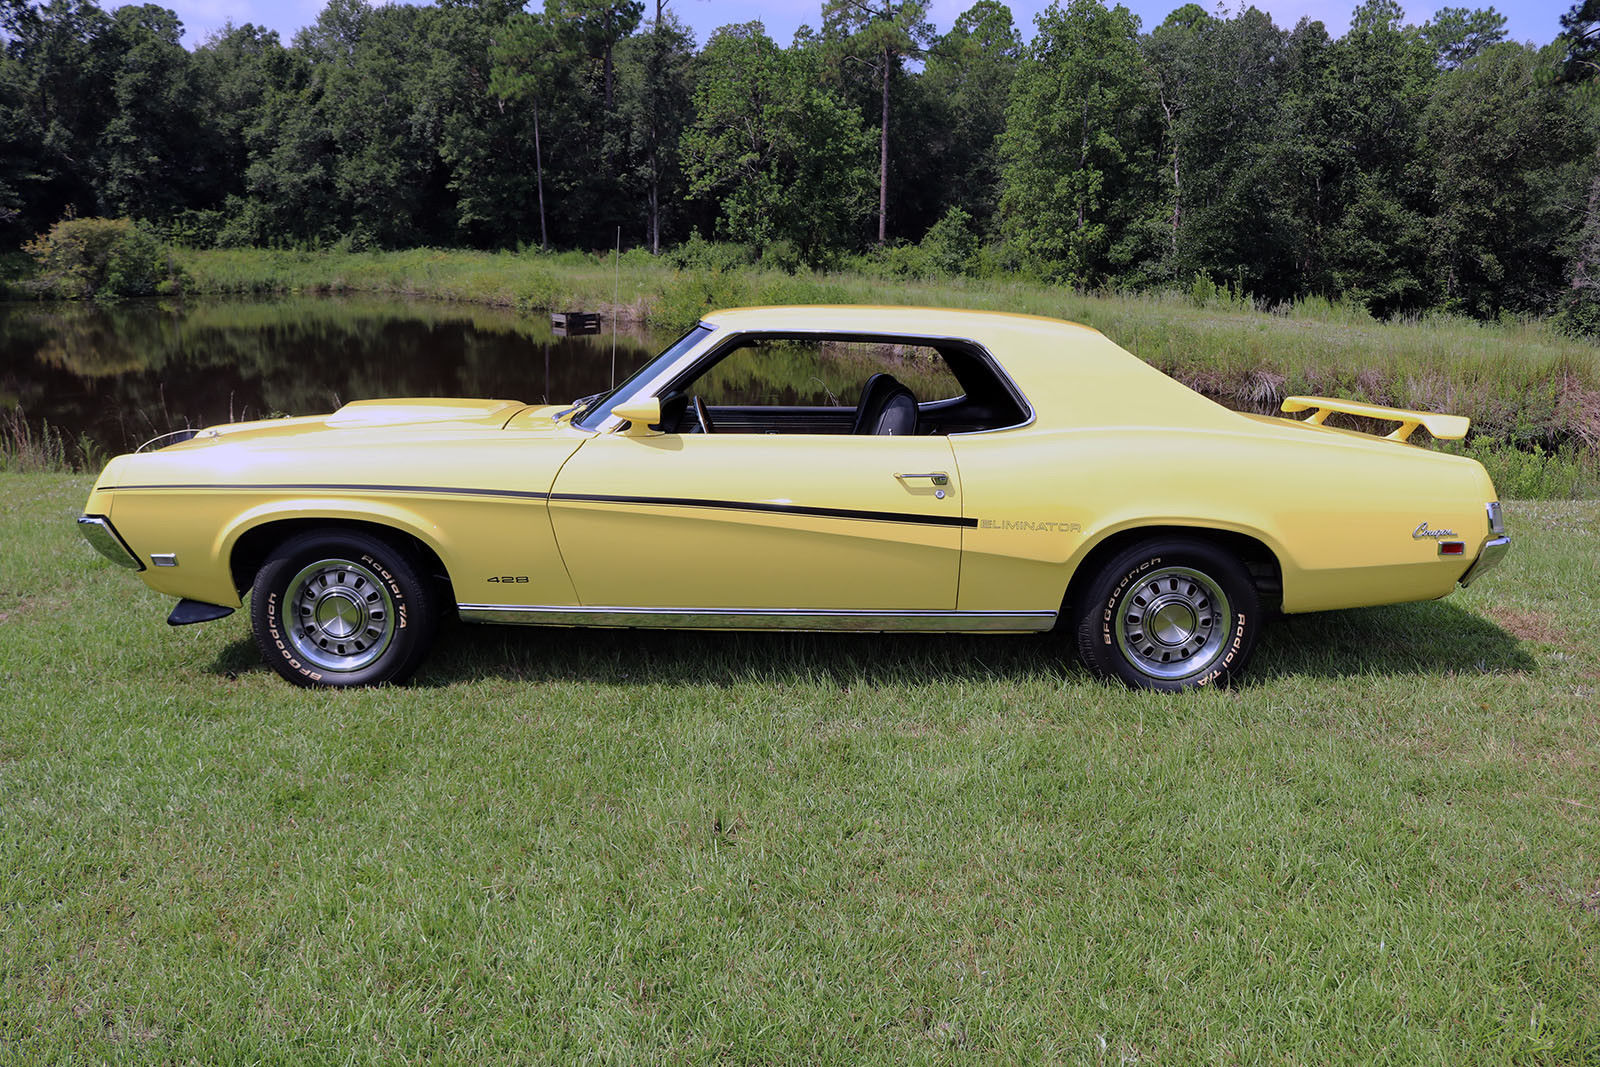 1969 Mercury Cougar Eliminator profile